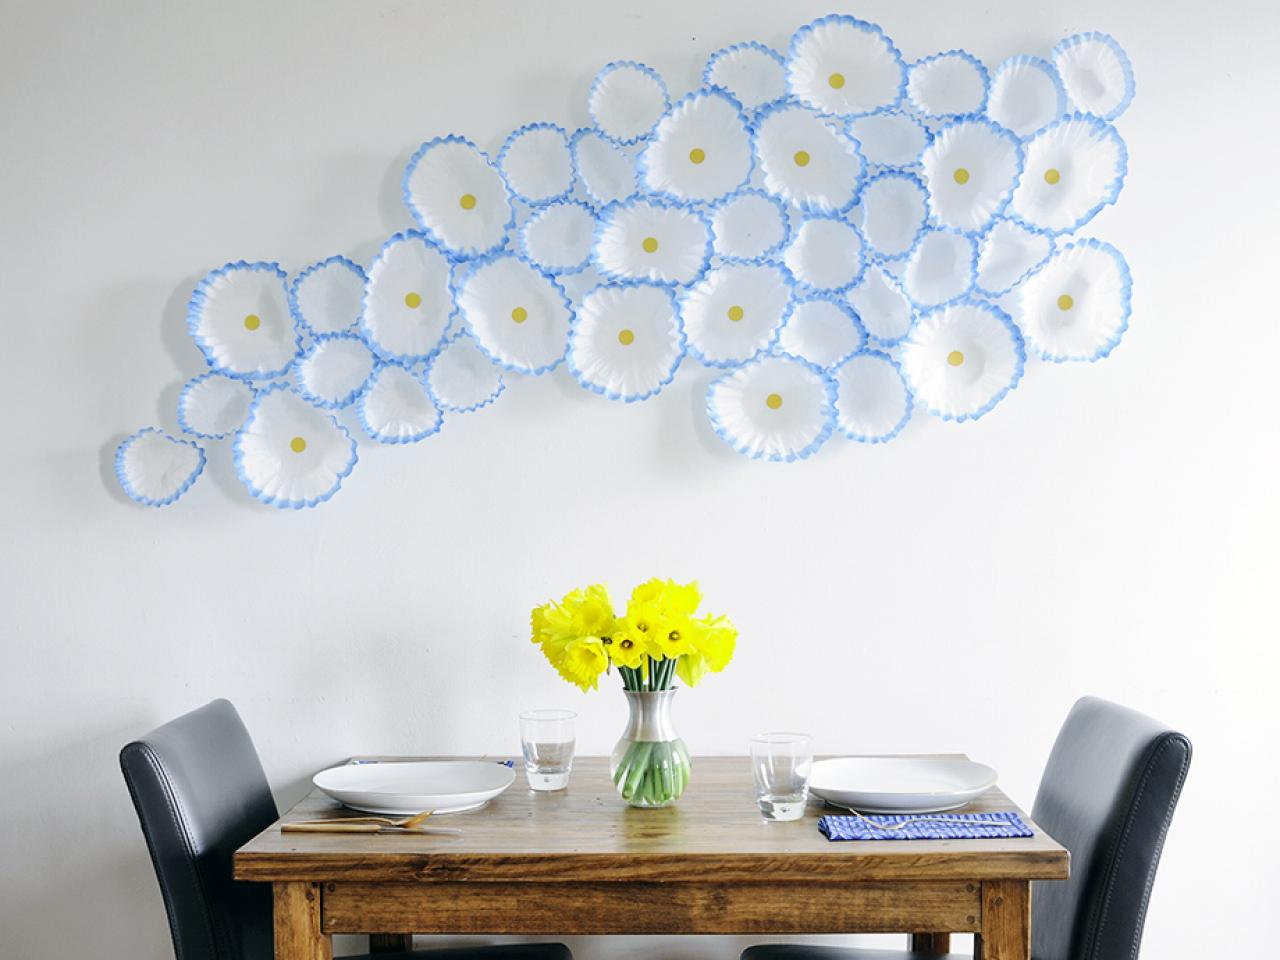 How To Make Fl Wall Art With Coffee Filters